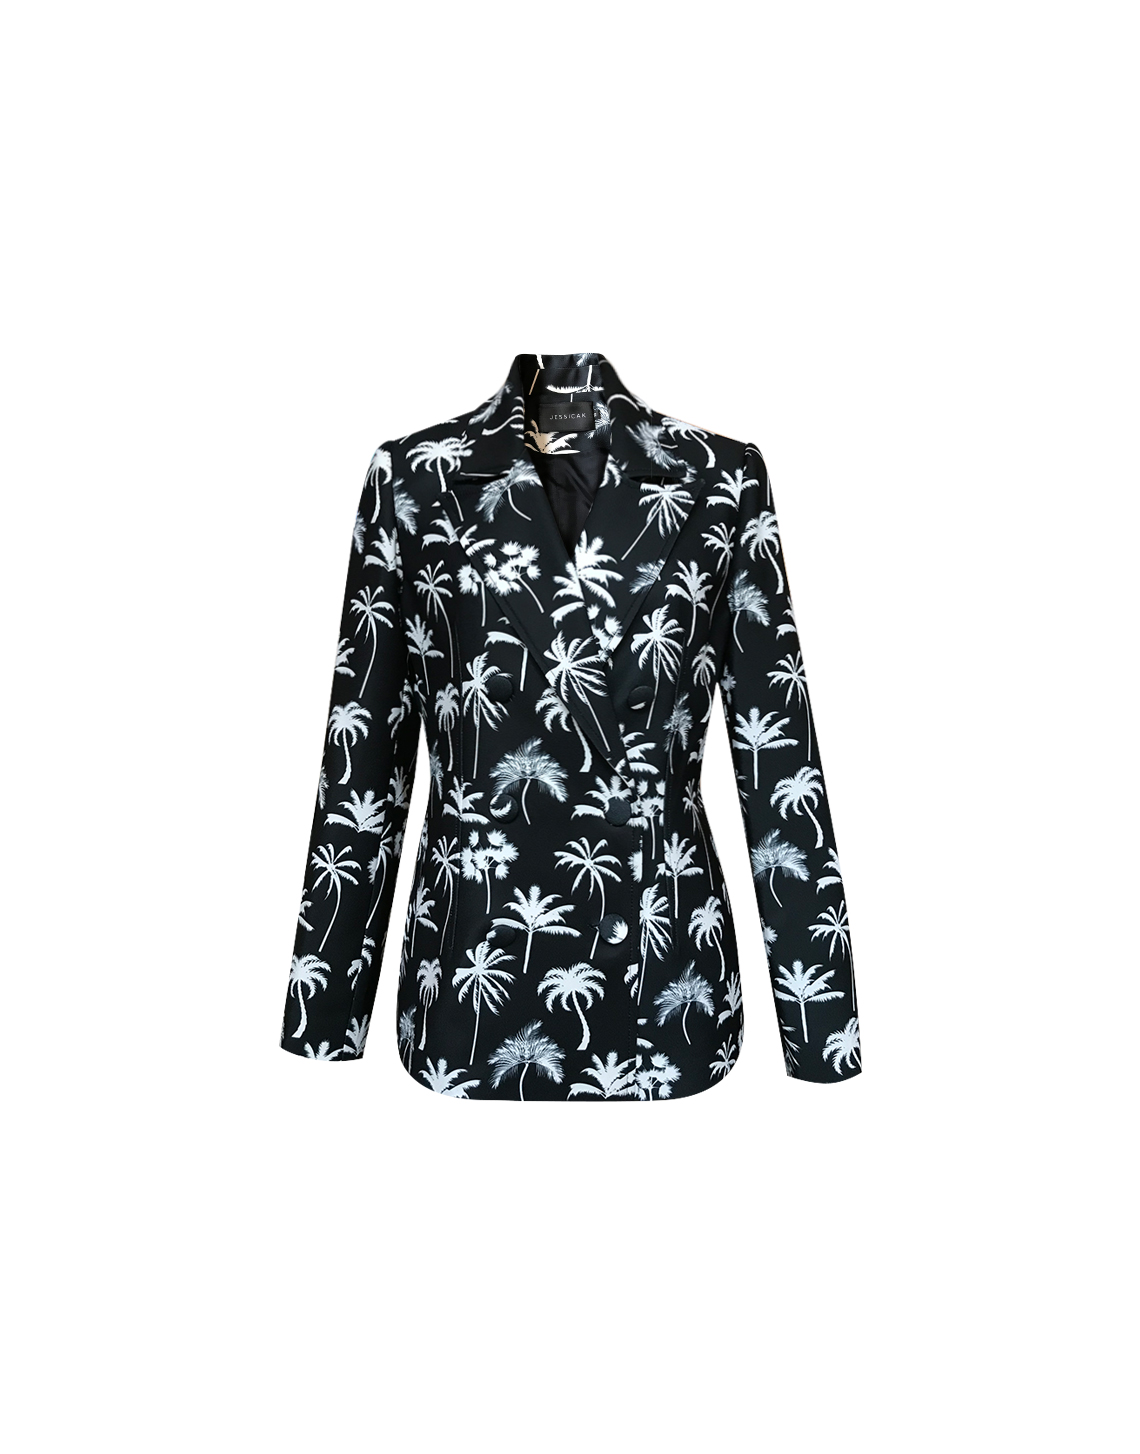 Whitney Blazer - Palm Print by Jessica K on curated-crowd.com